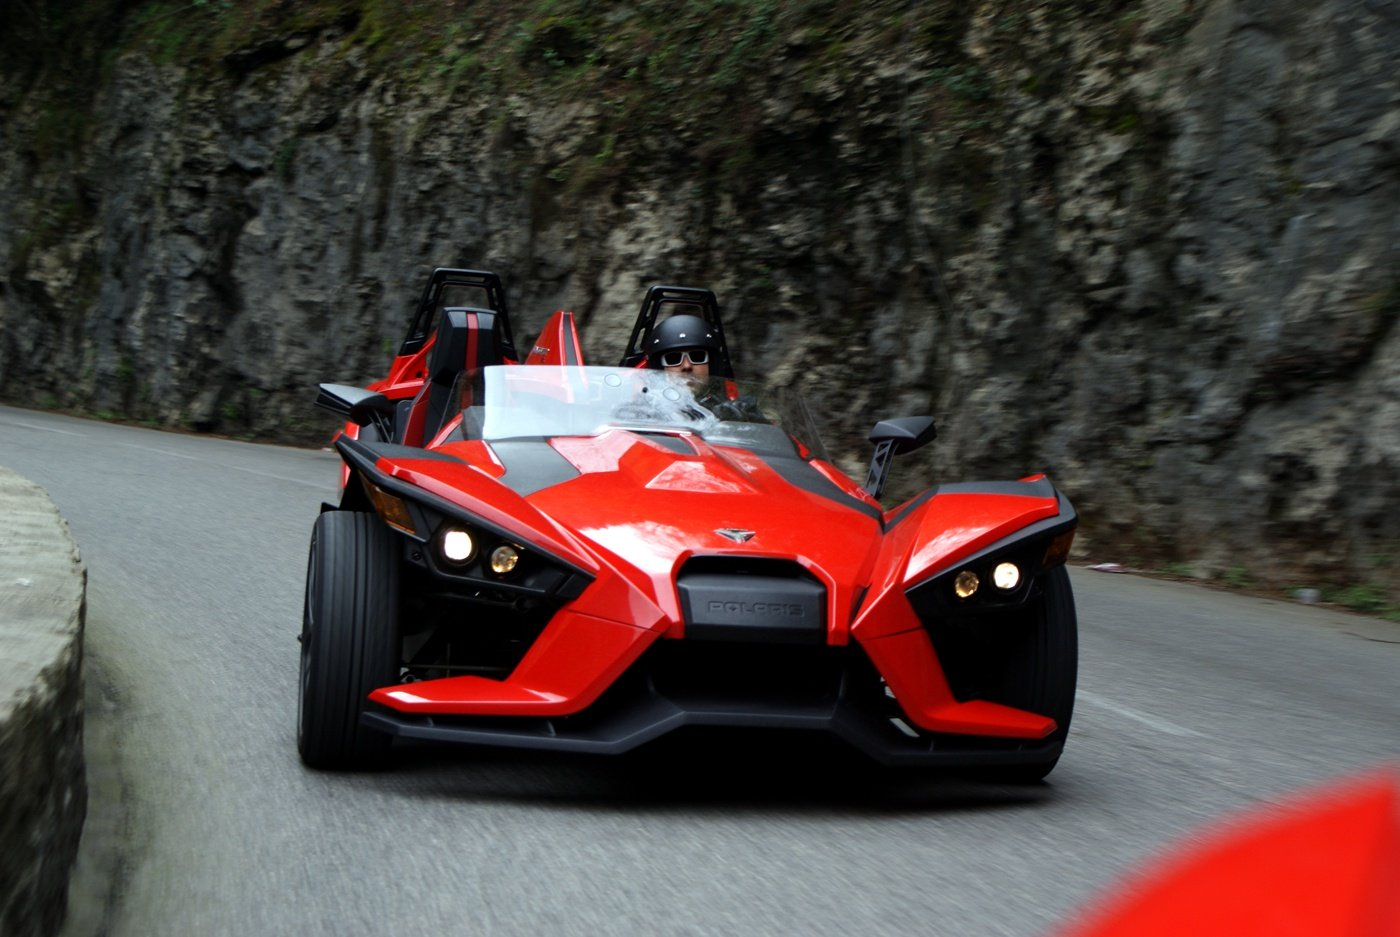 Polaris Slingshot Route 10